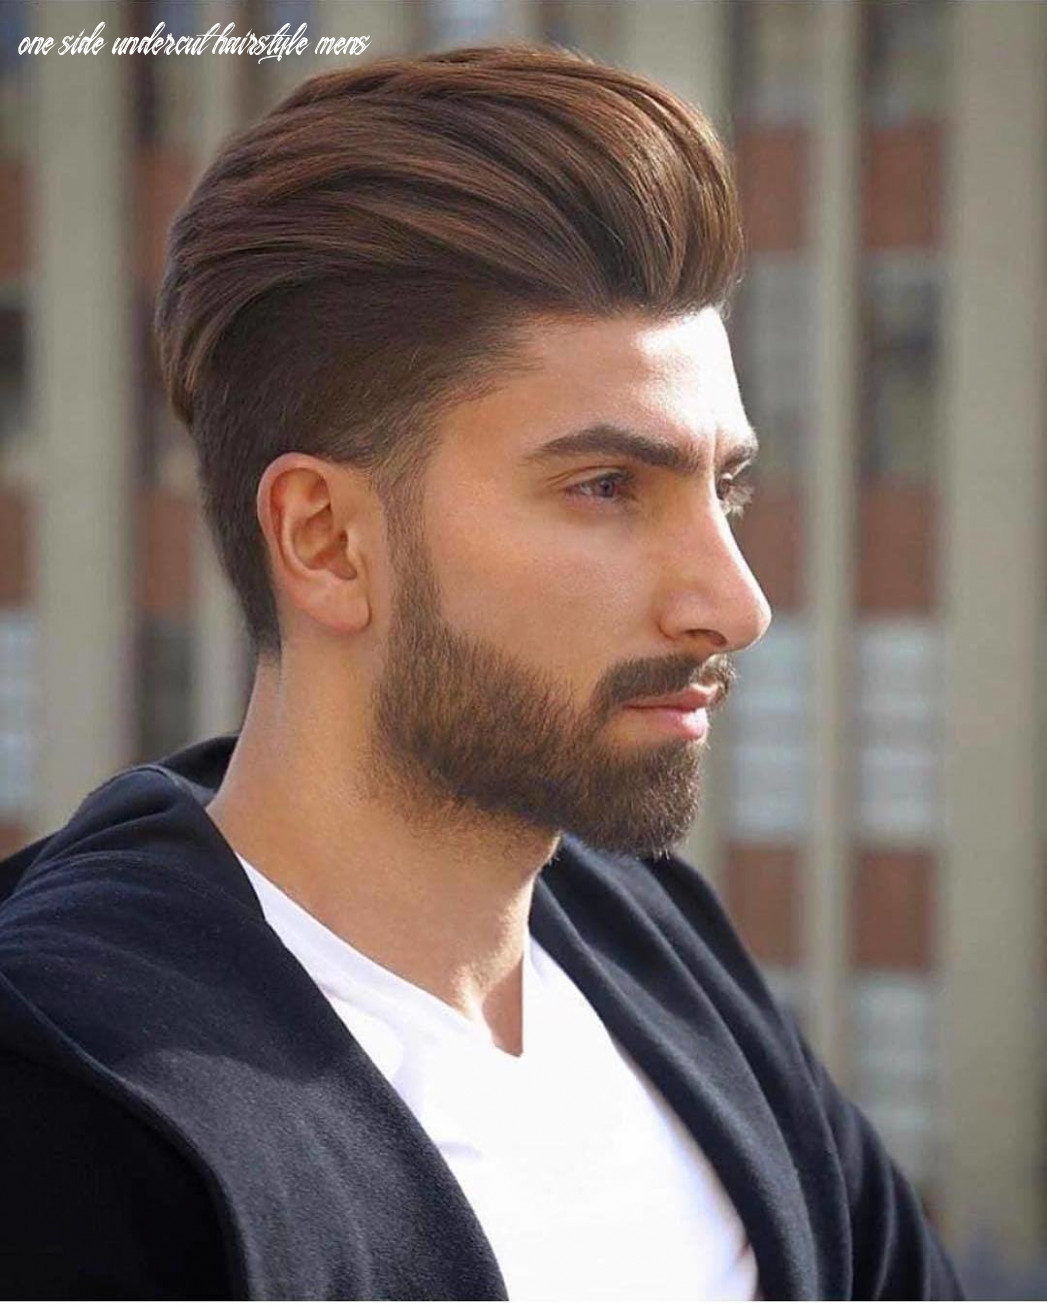 8 Cool Undercut Hairstyles for Men - Men's Hairstyles